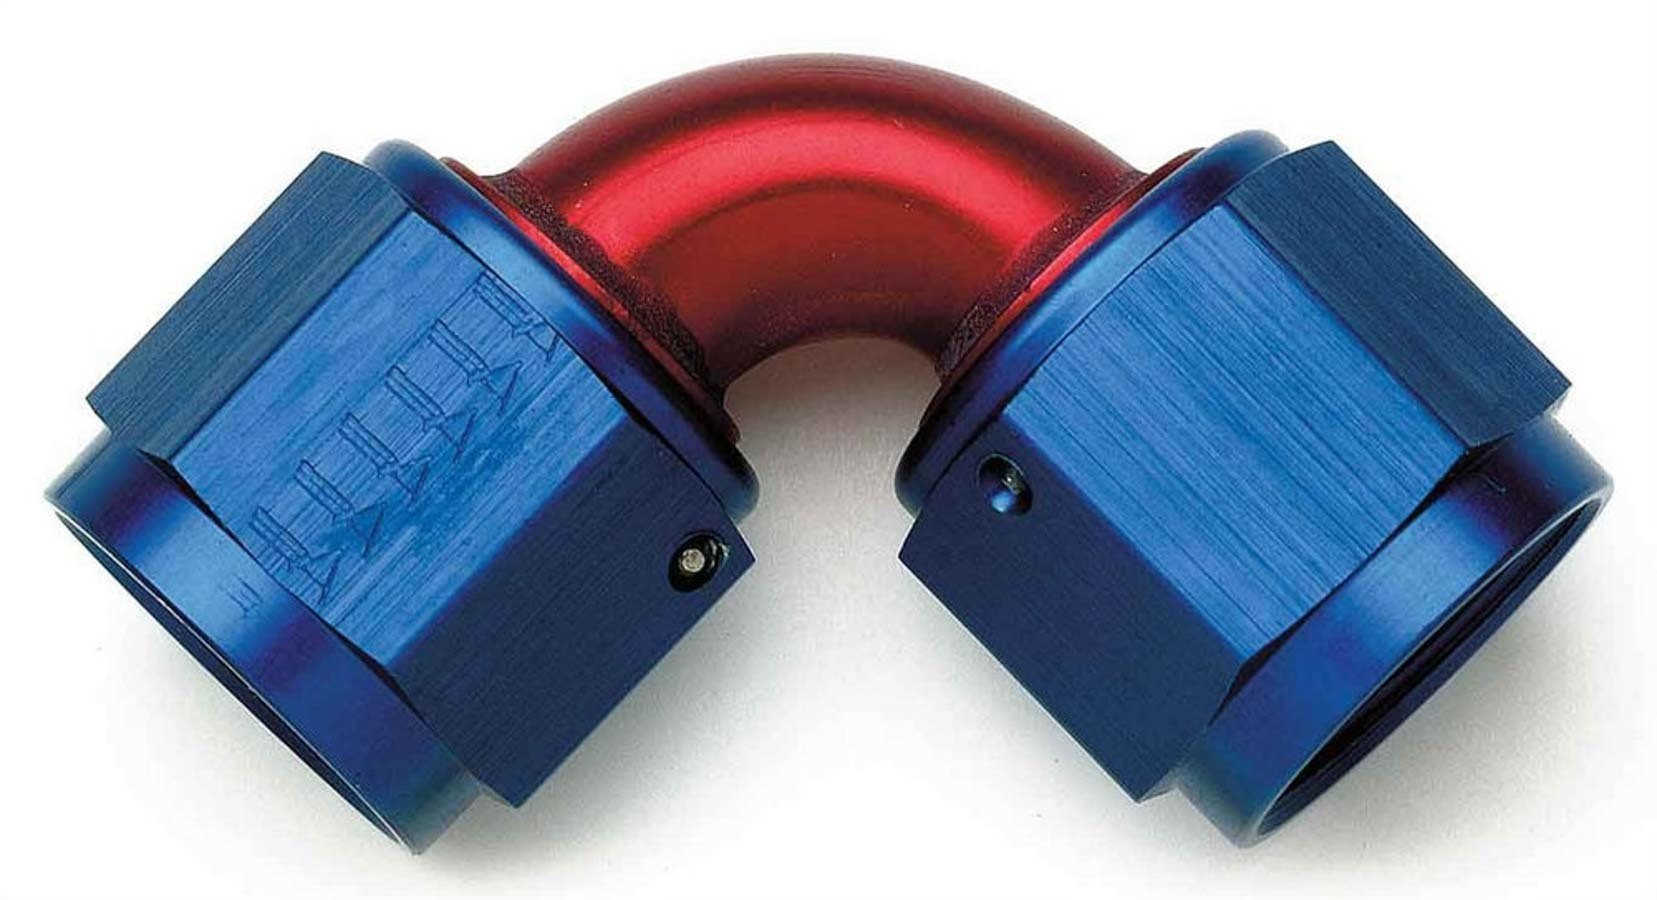 Aeroquip FCM2979 Fitting, Adapter, 90 Degree, 8 AN Female Swivel to 8 AN Female Swivel, Aluminum, Blue / Red Anodize, Each